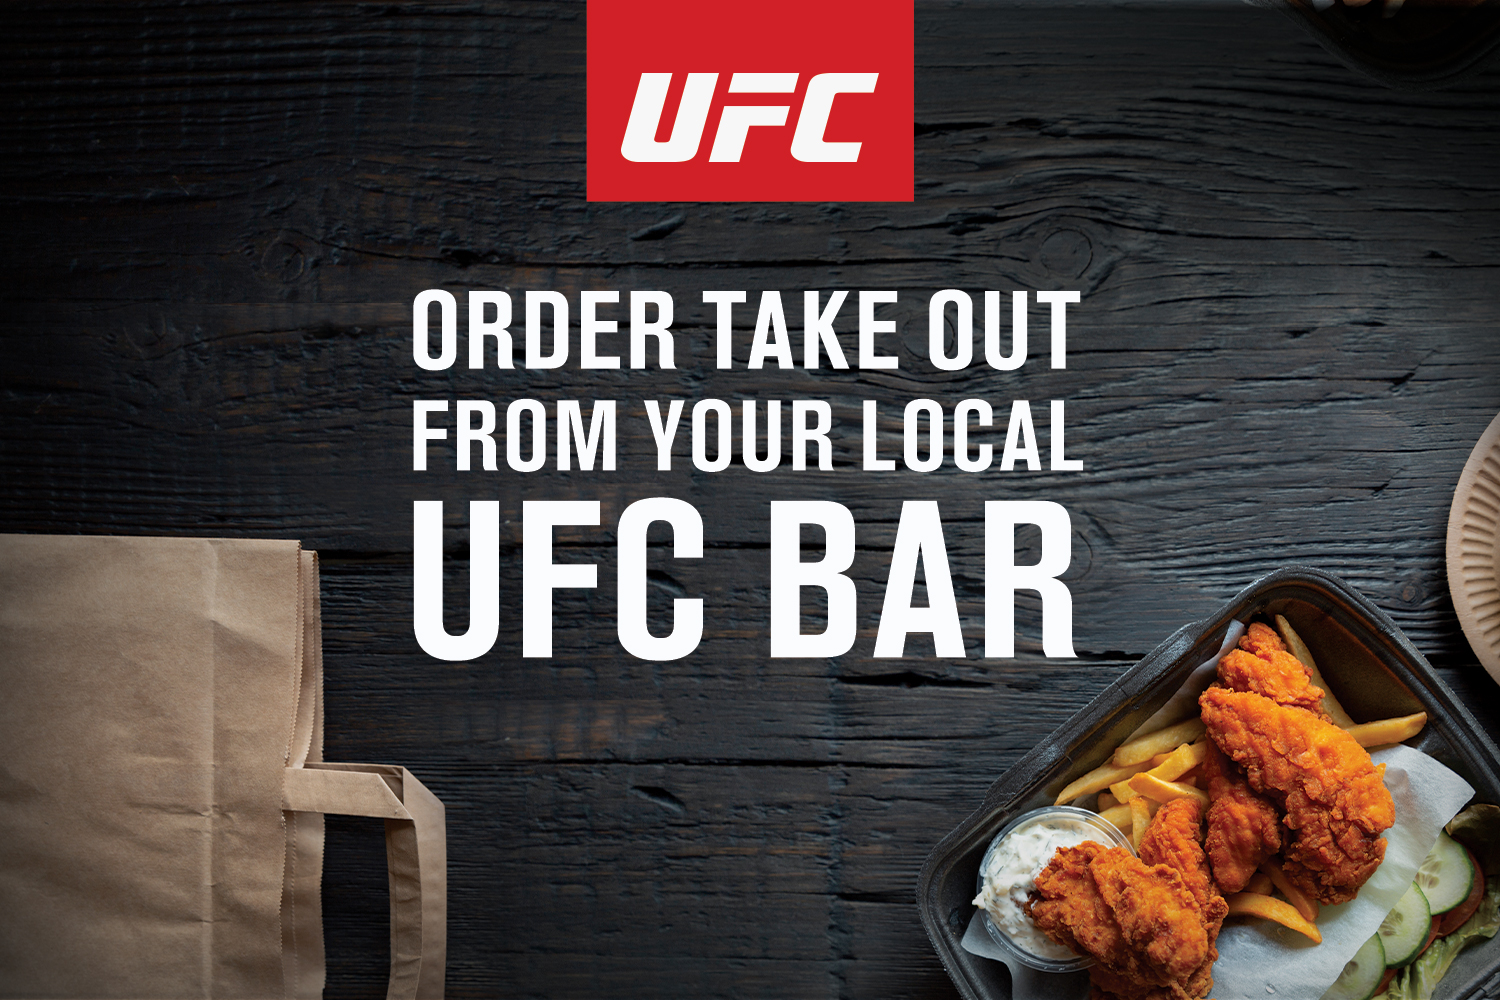 Visit UFC Bars for Takeout Options